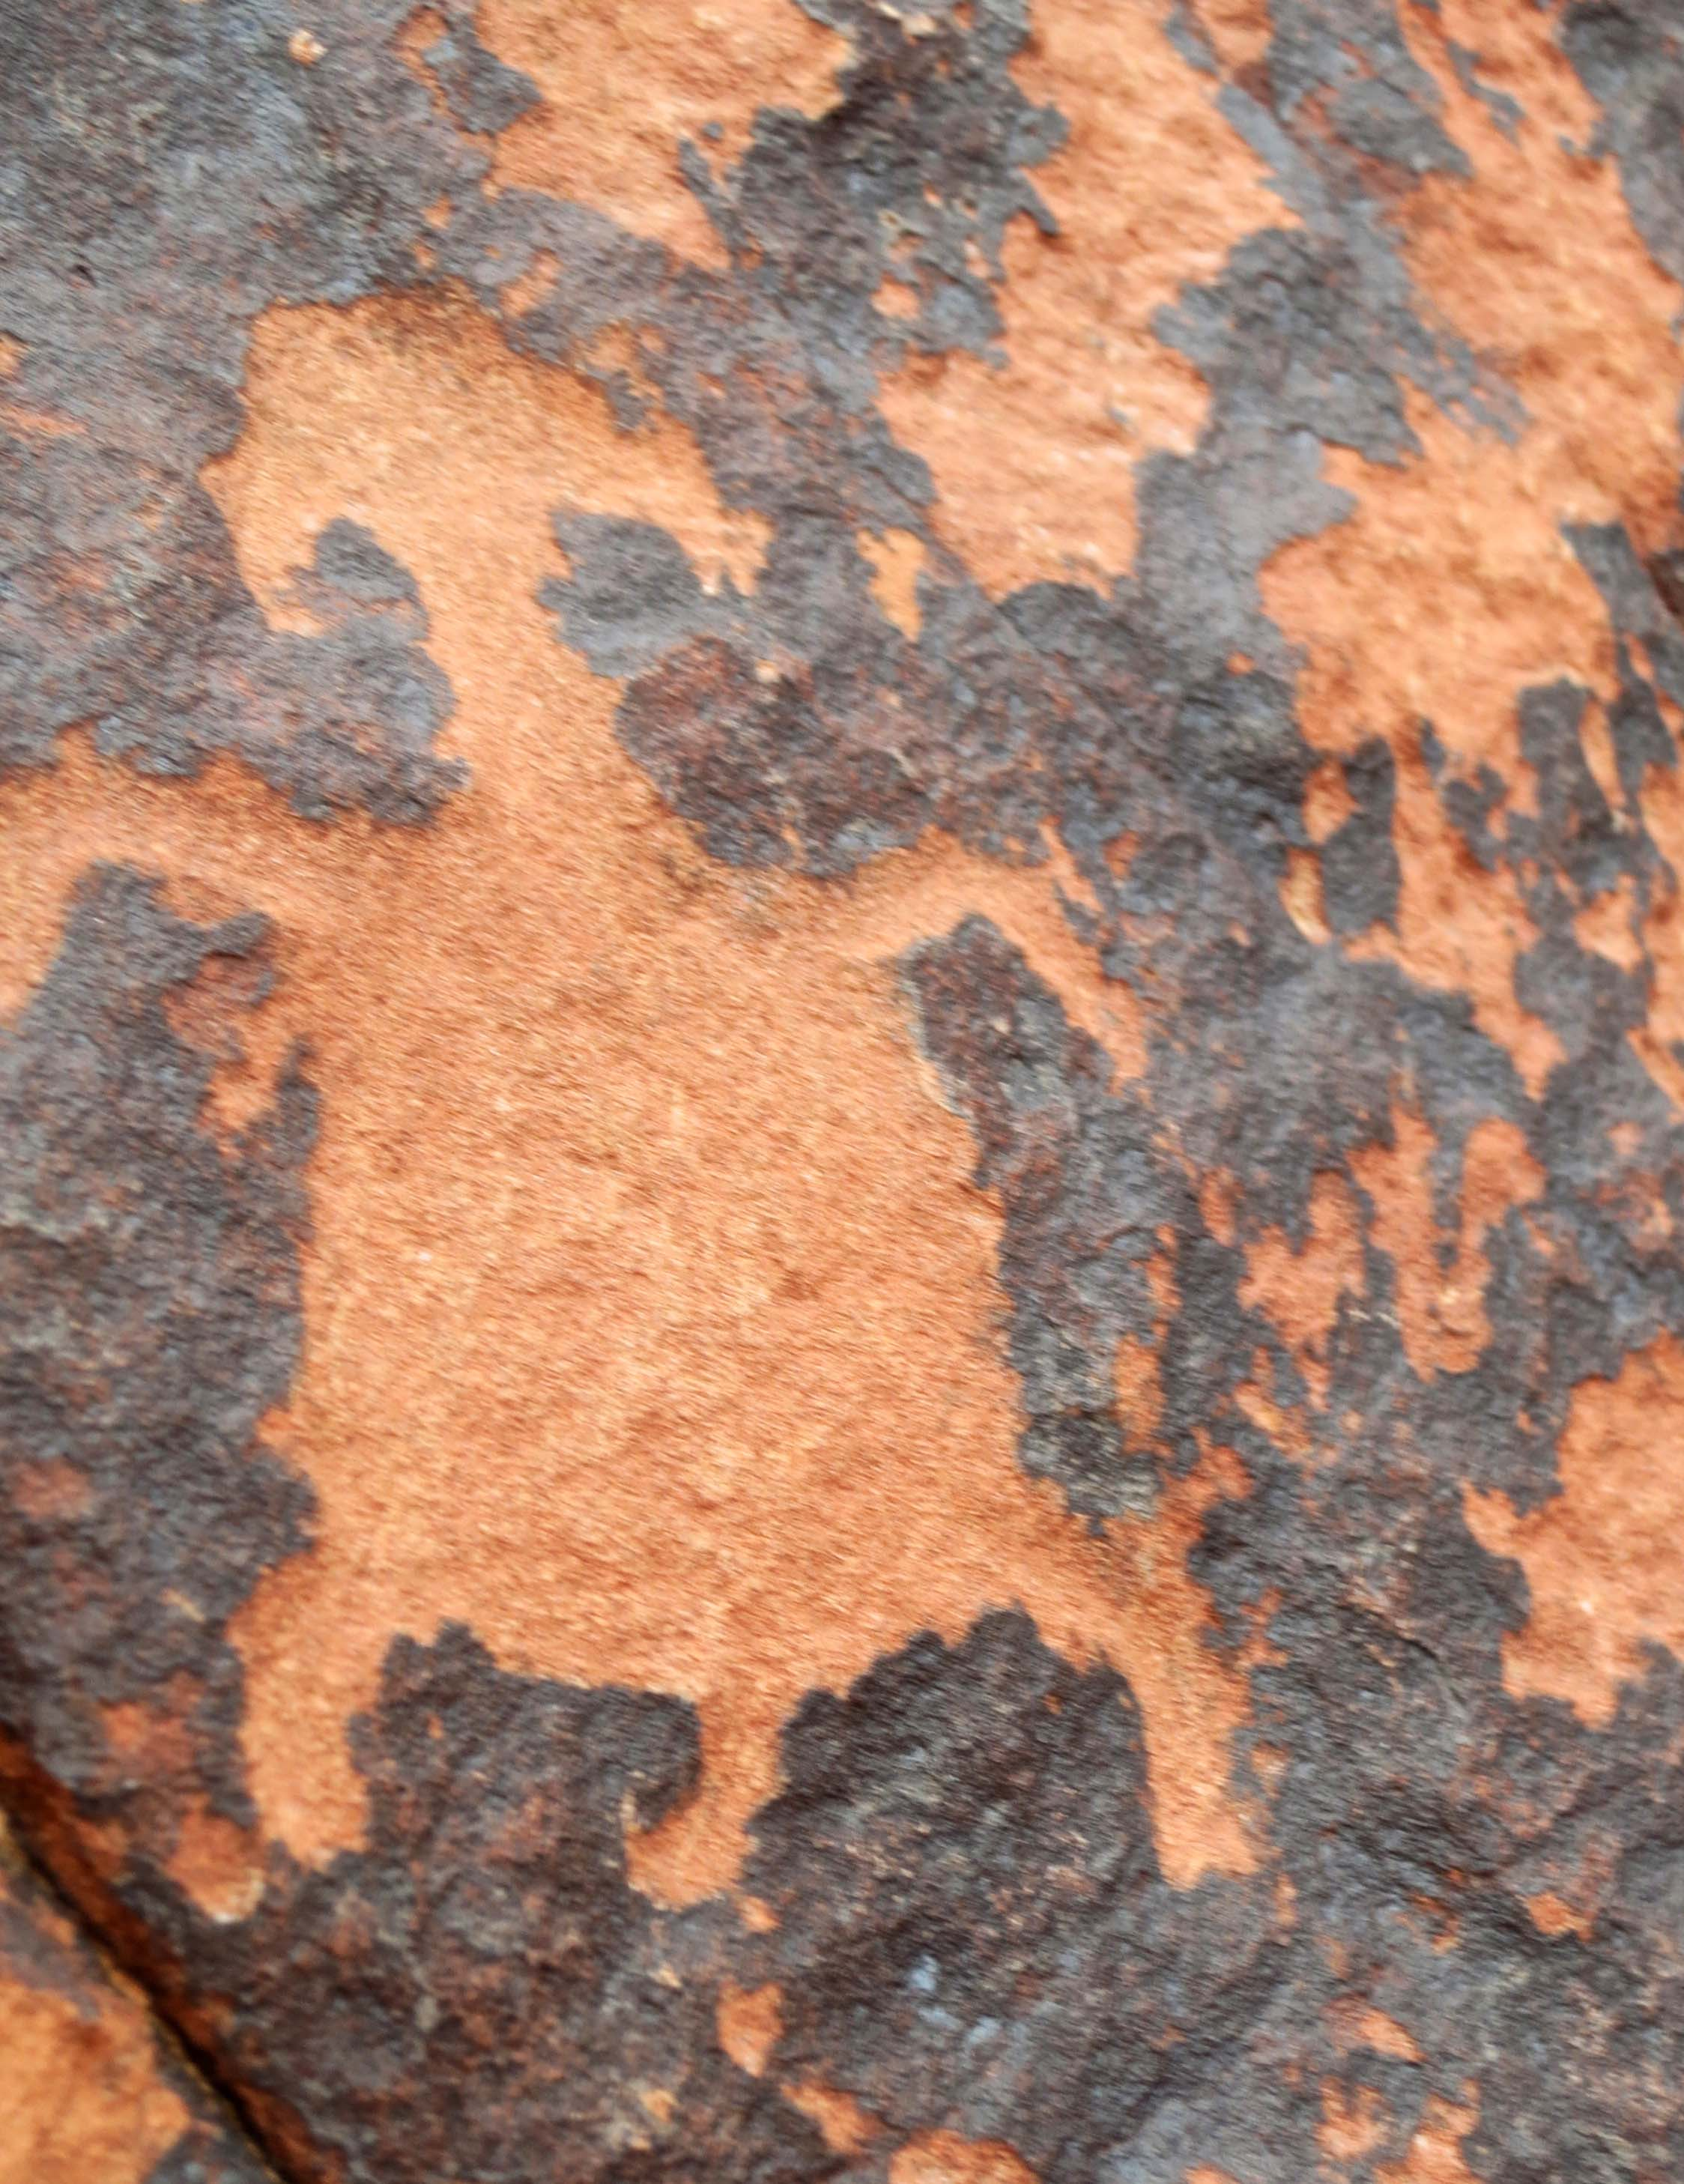 Dog petroglyph at the Valley of Fire State Park.